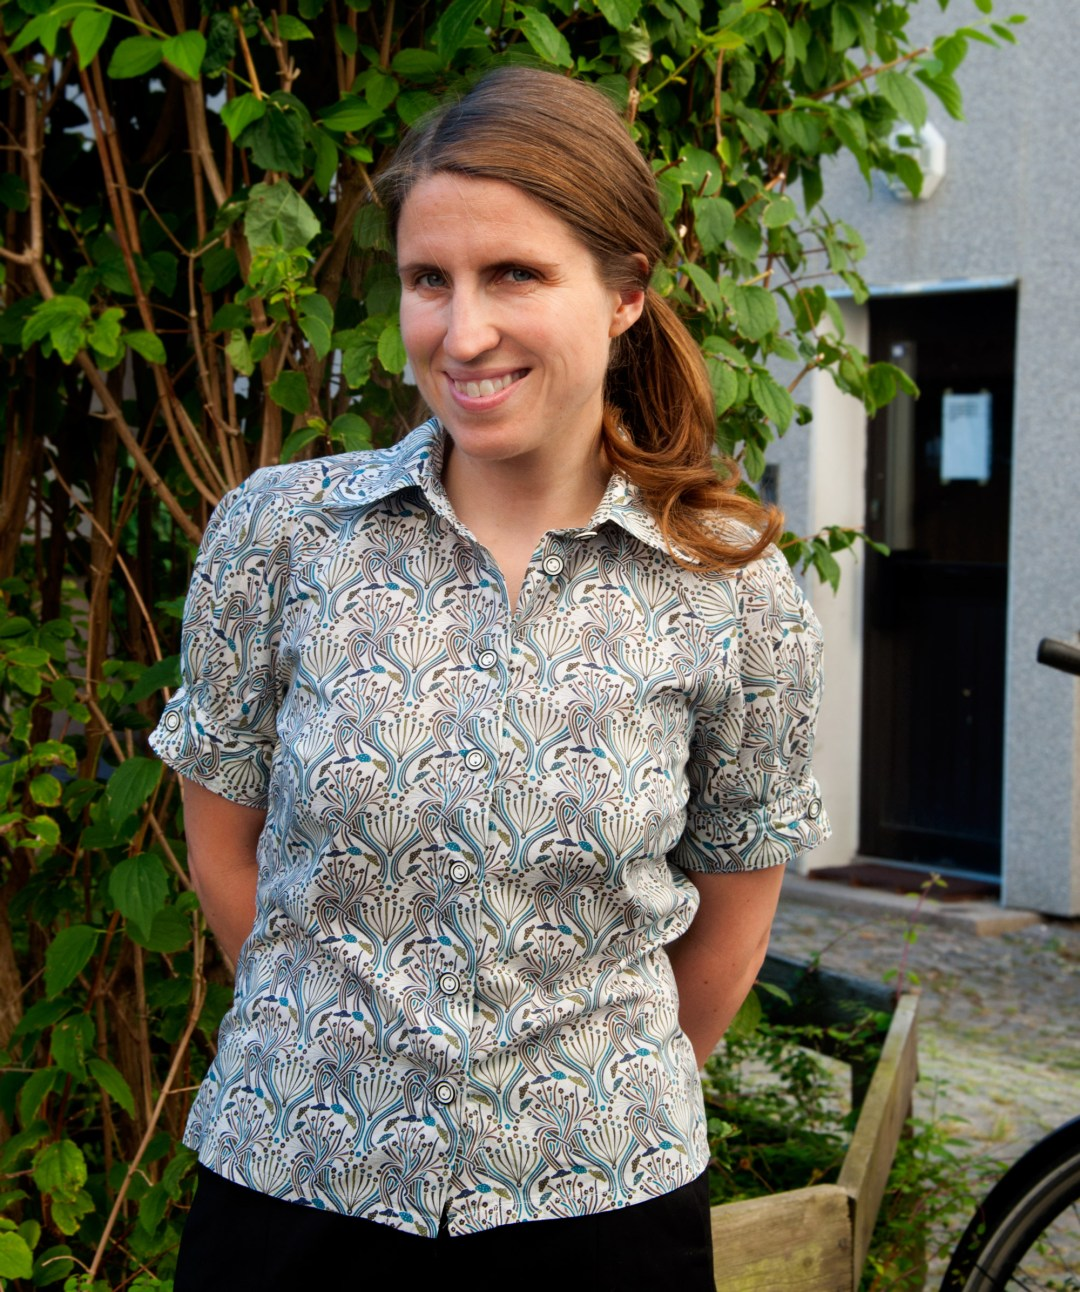 Liberty pegalia blouse. Burdastyle pattern